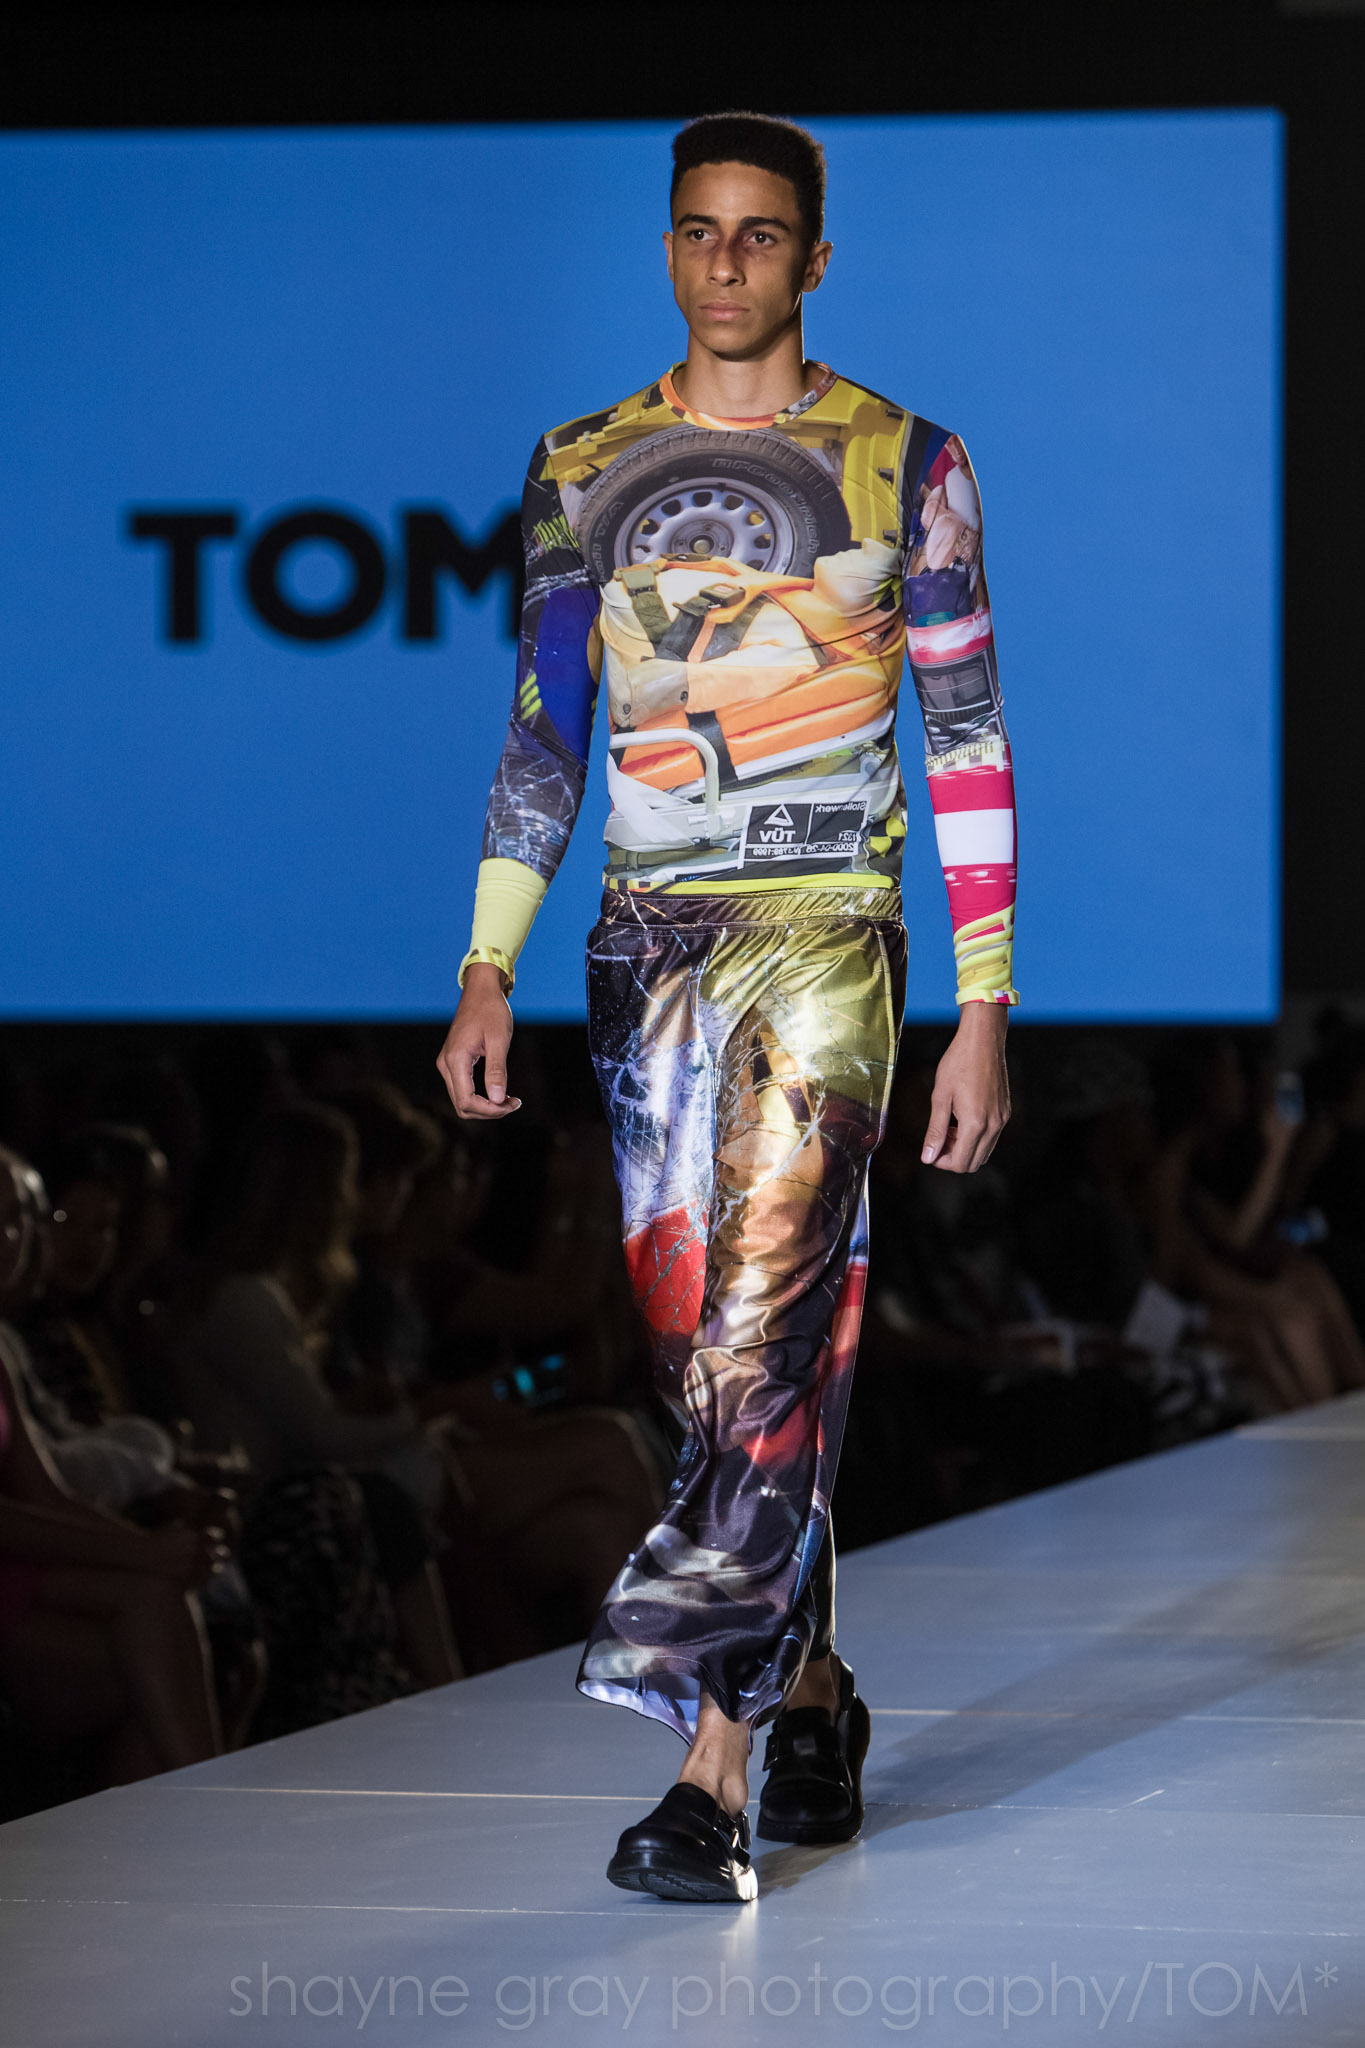 Shayne-Gray-Toronto-men's-fashion_week-TOM-lafaille-7597.jpg